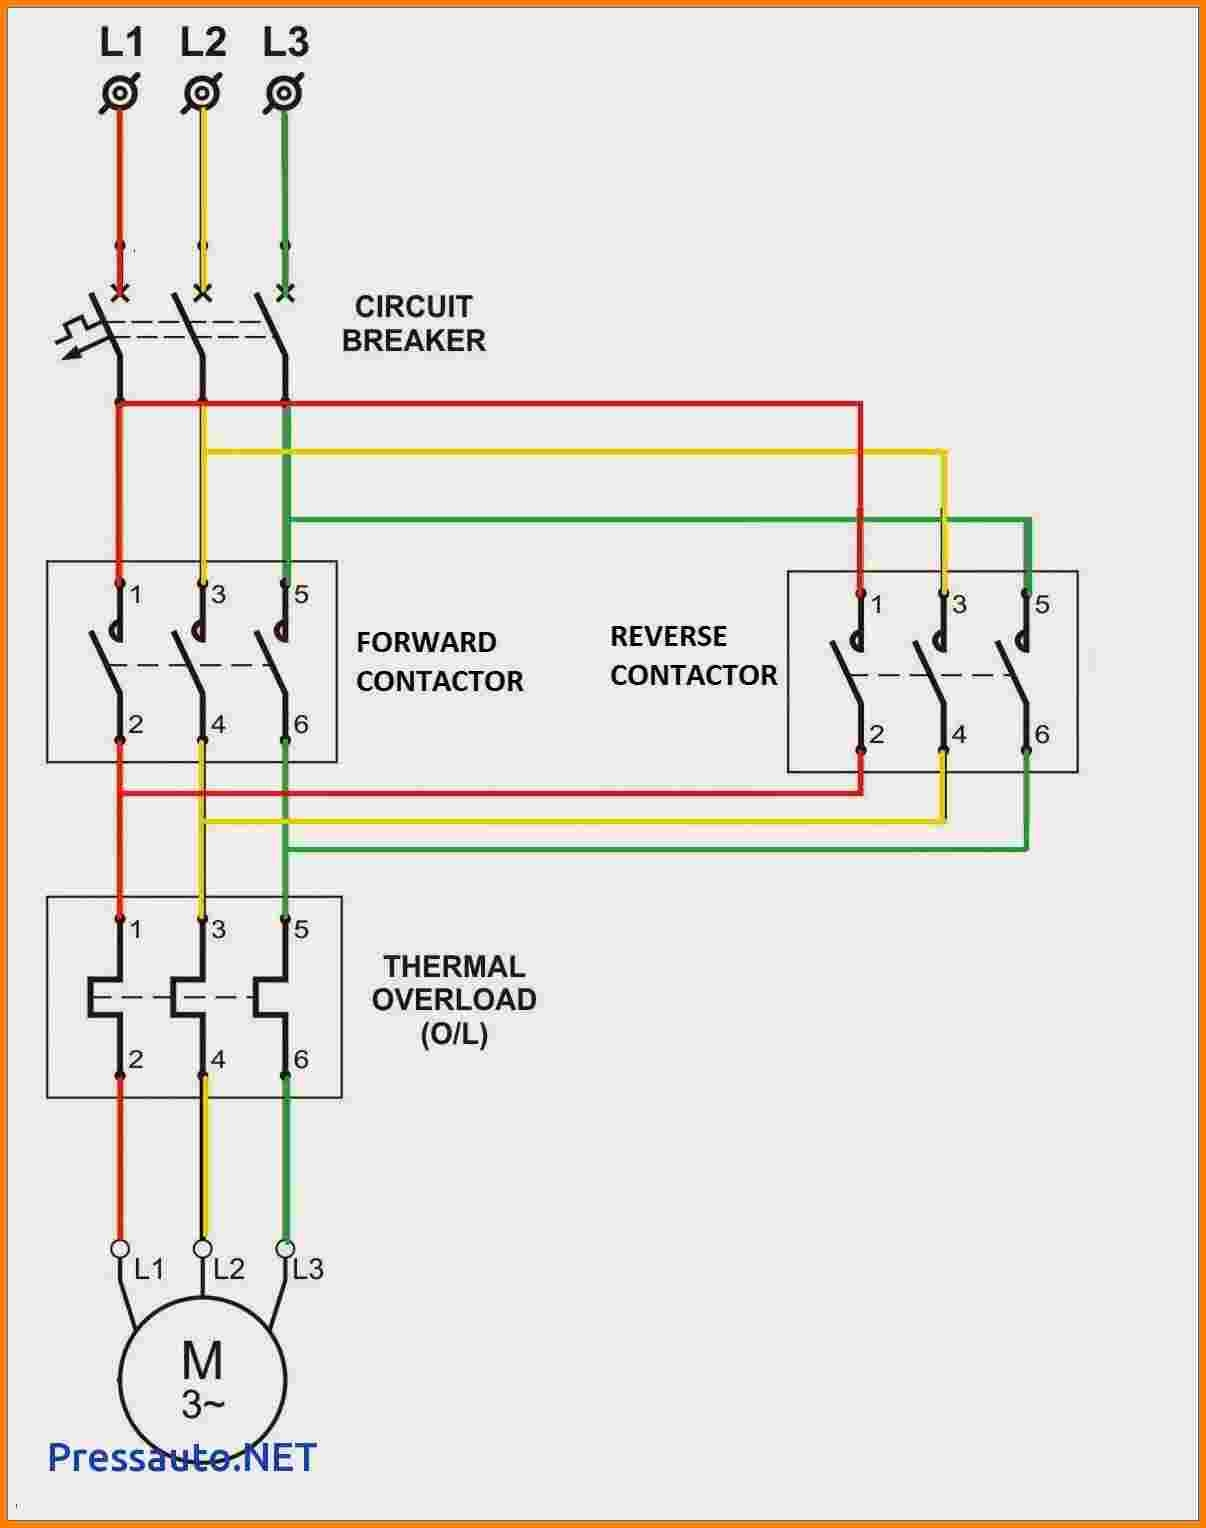 single phase motor reversing diagram motor starter wiring diagram start stop | free wiring diagram #4